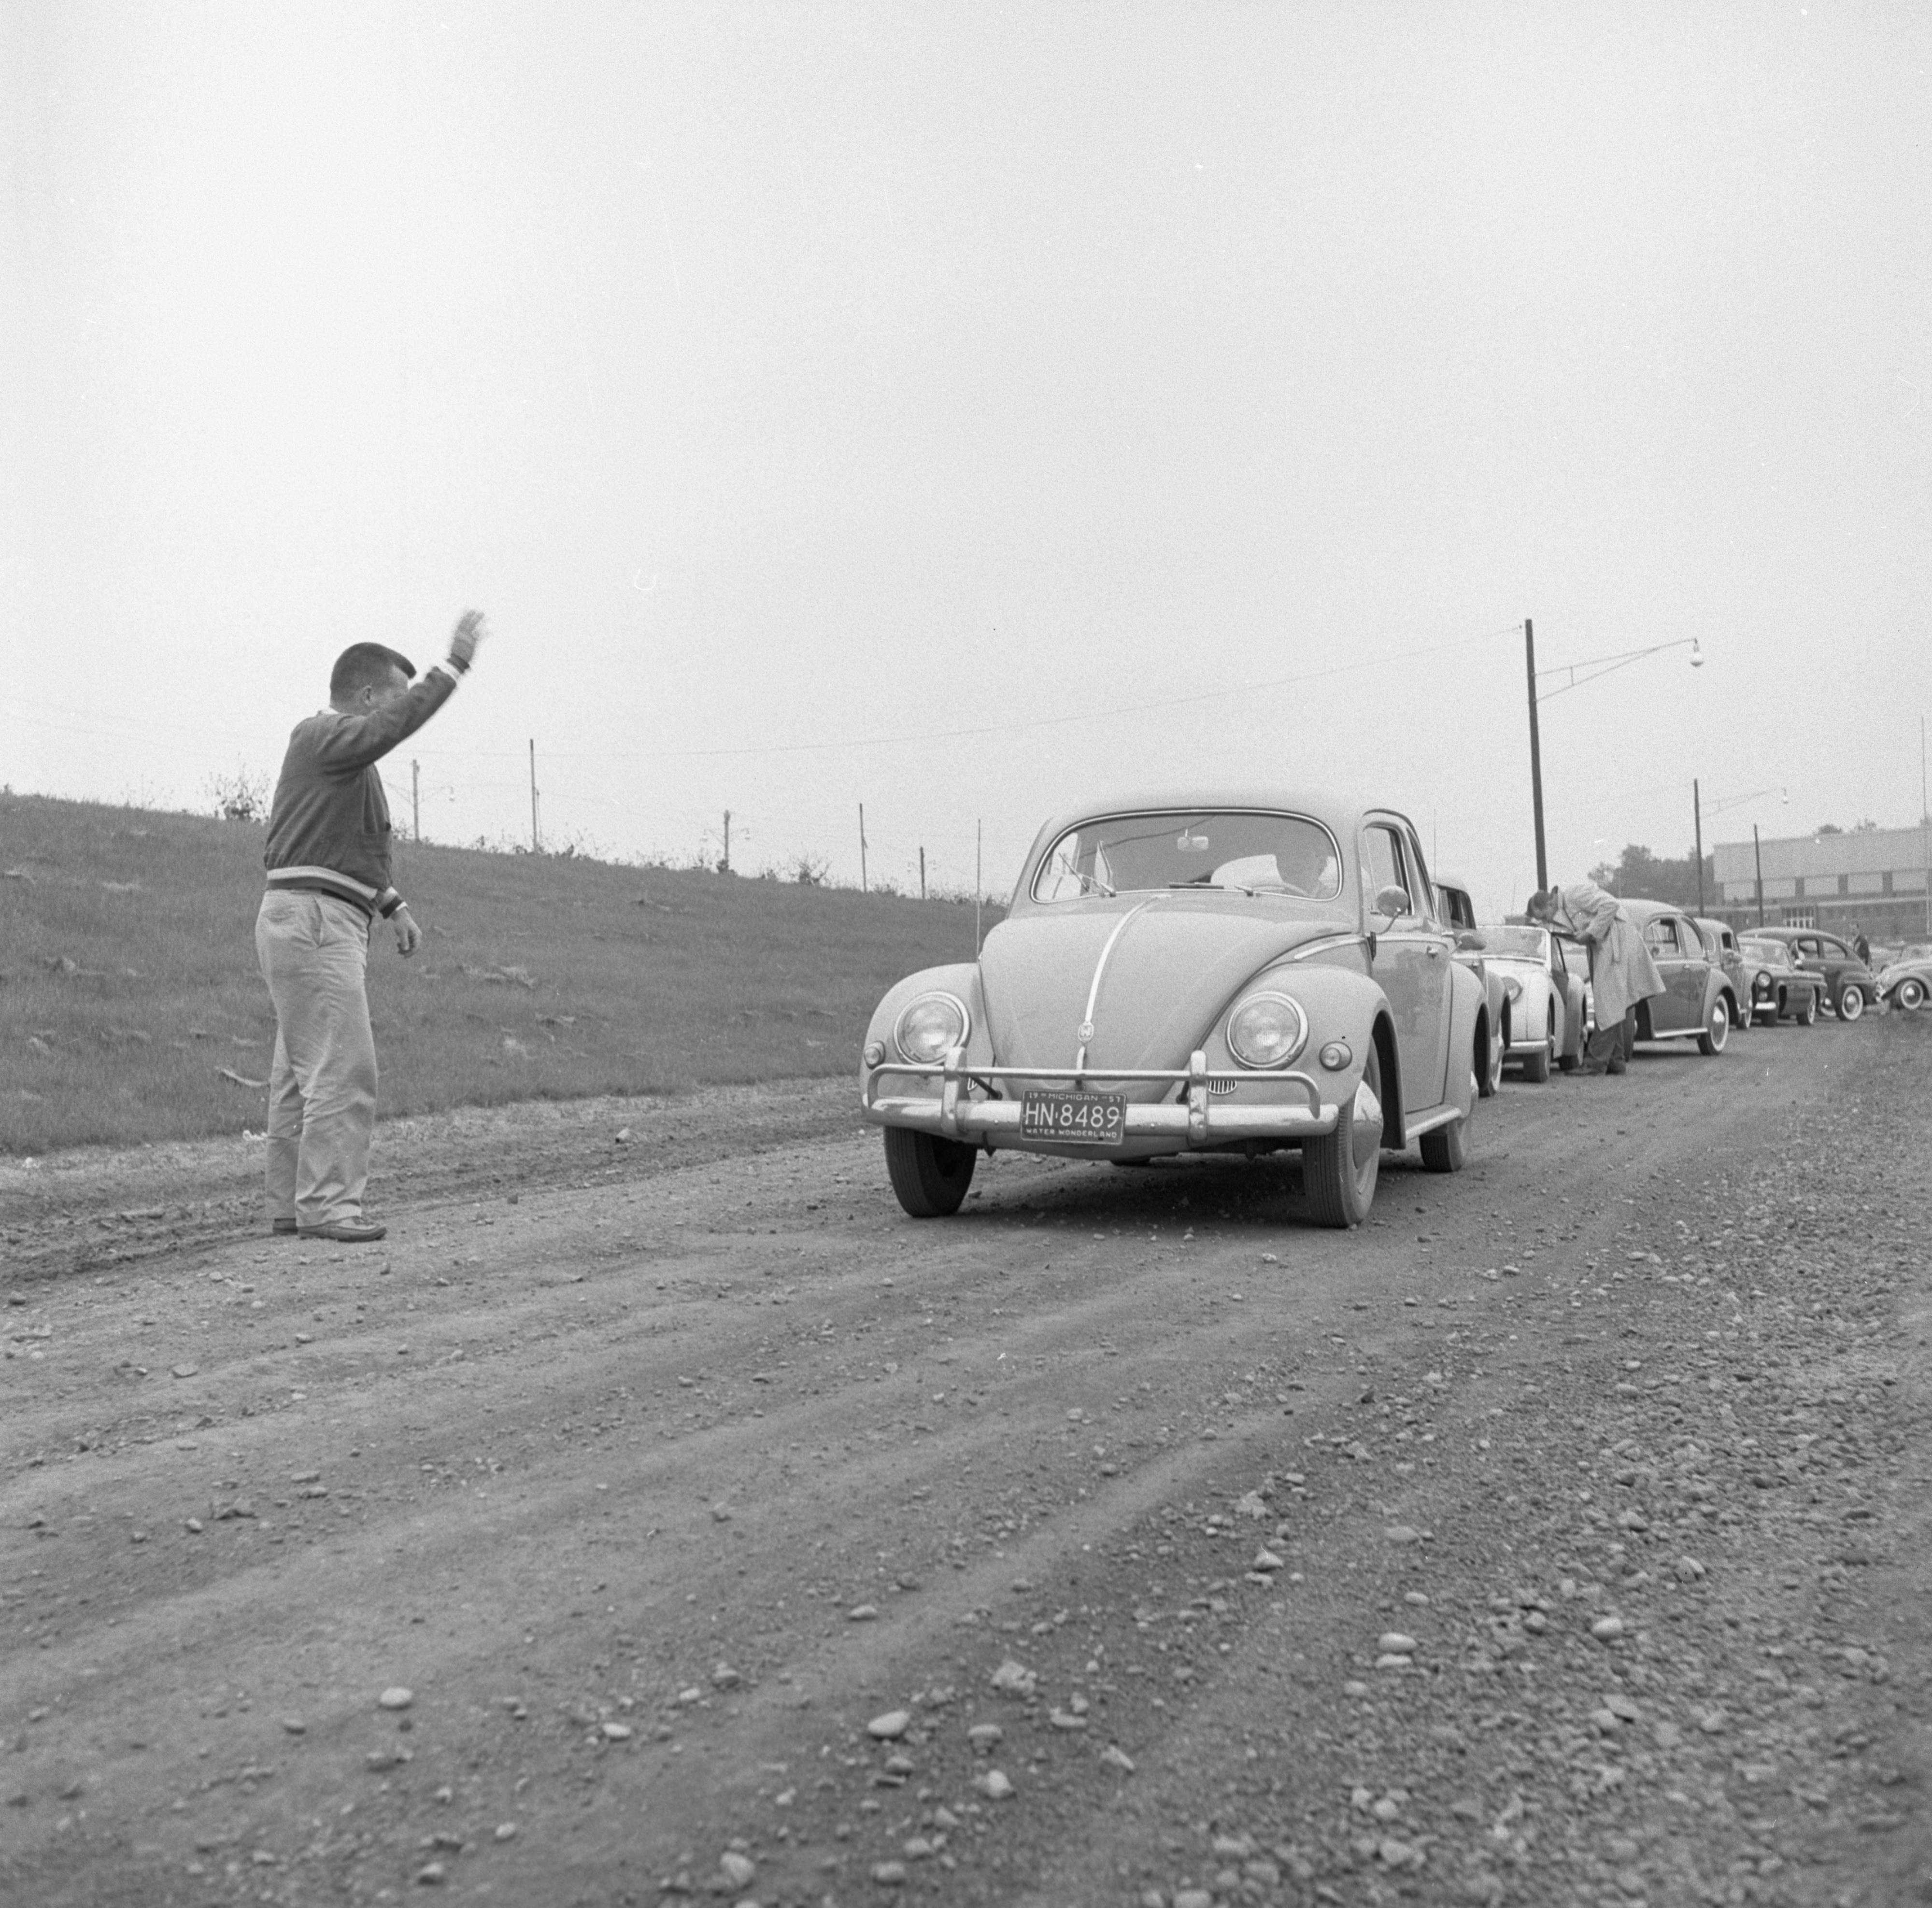 Cars Line Up At Ann Arbor High School For The Start Of A Foreign Car Road Rally, June 1957 image